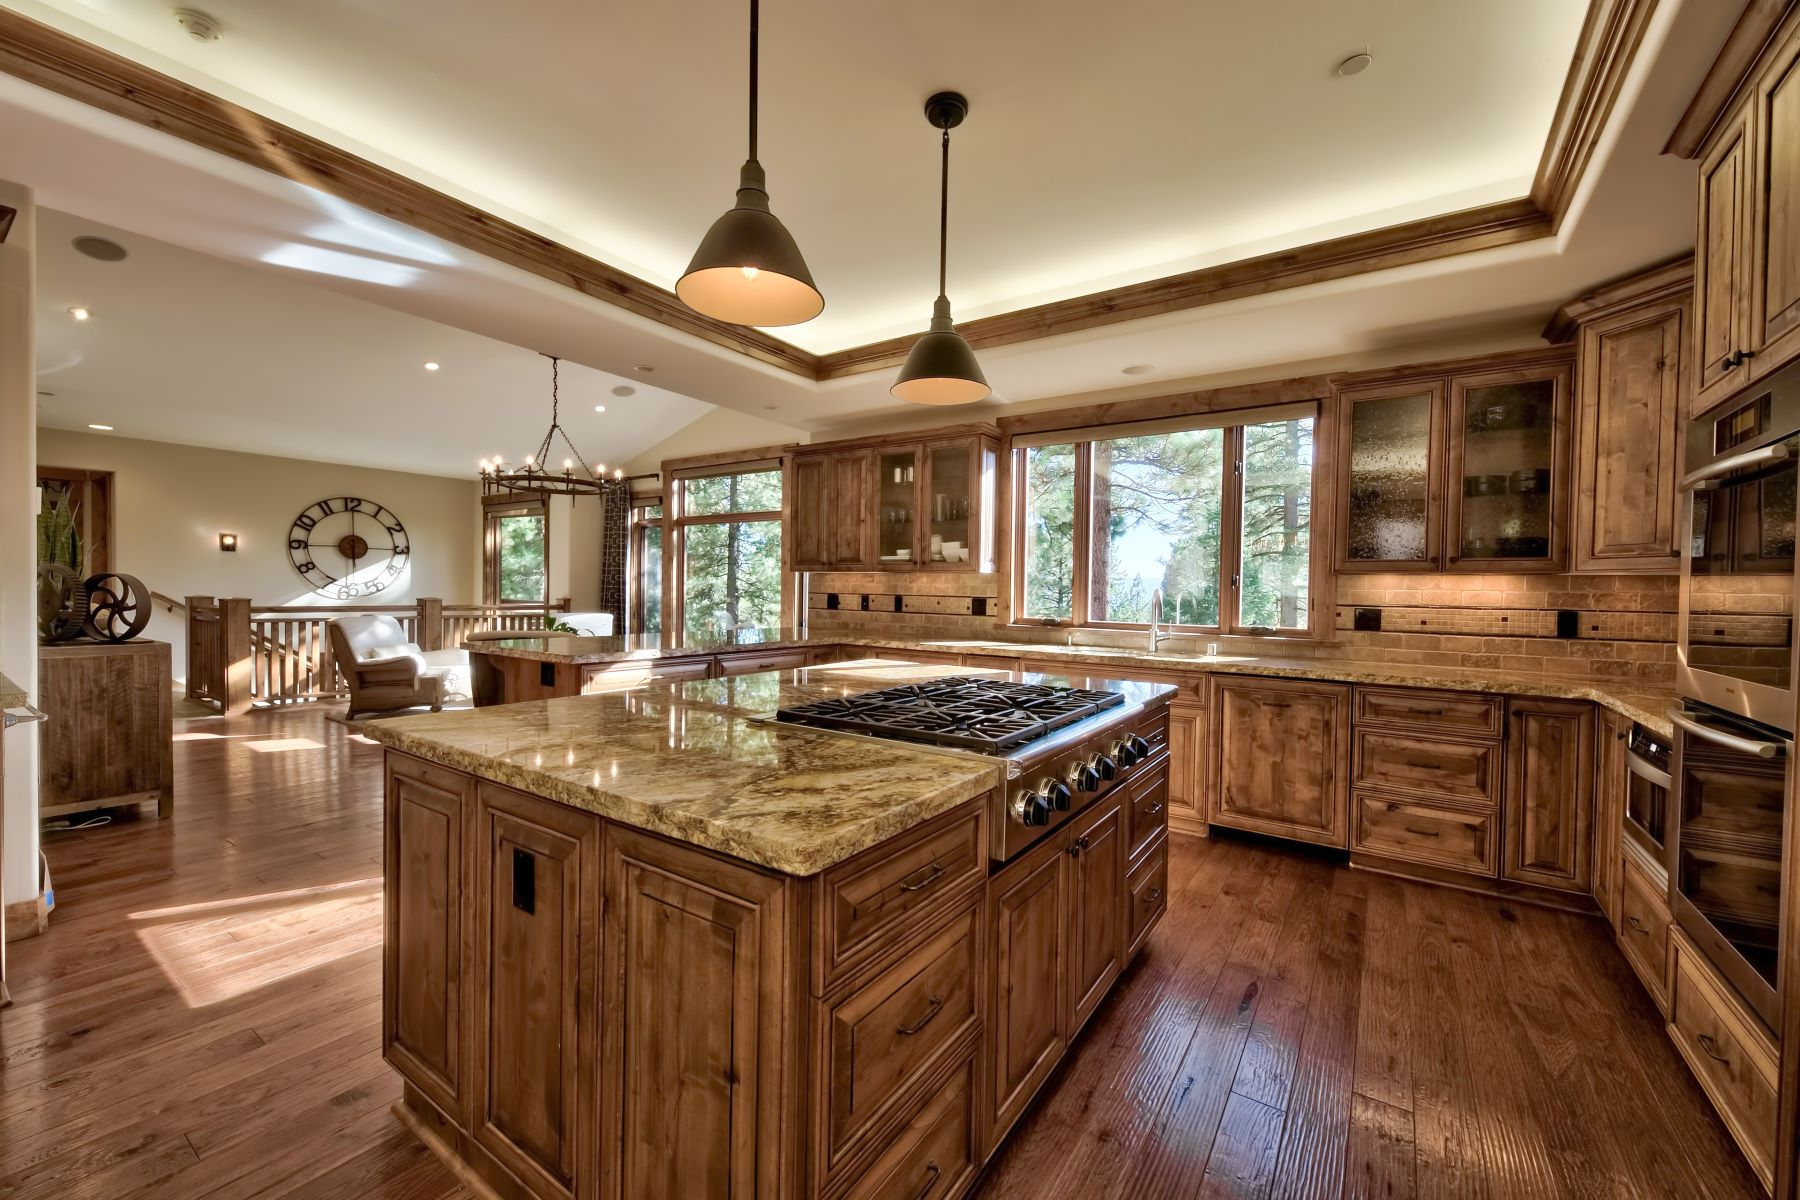 Additional photo for property listing at Stunning Lake Tahoe home 383 2nd Tee Drive Incline Village, Nevada 89451 United States